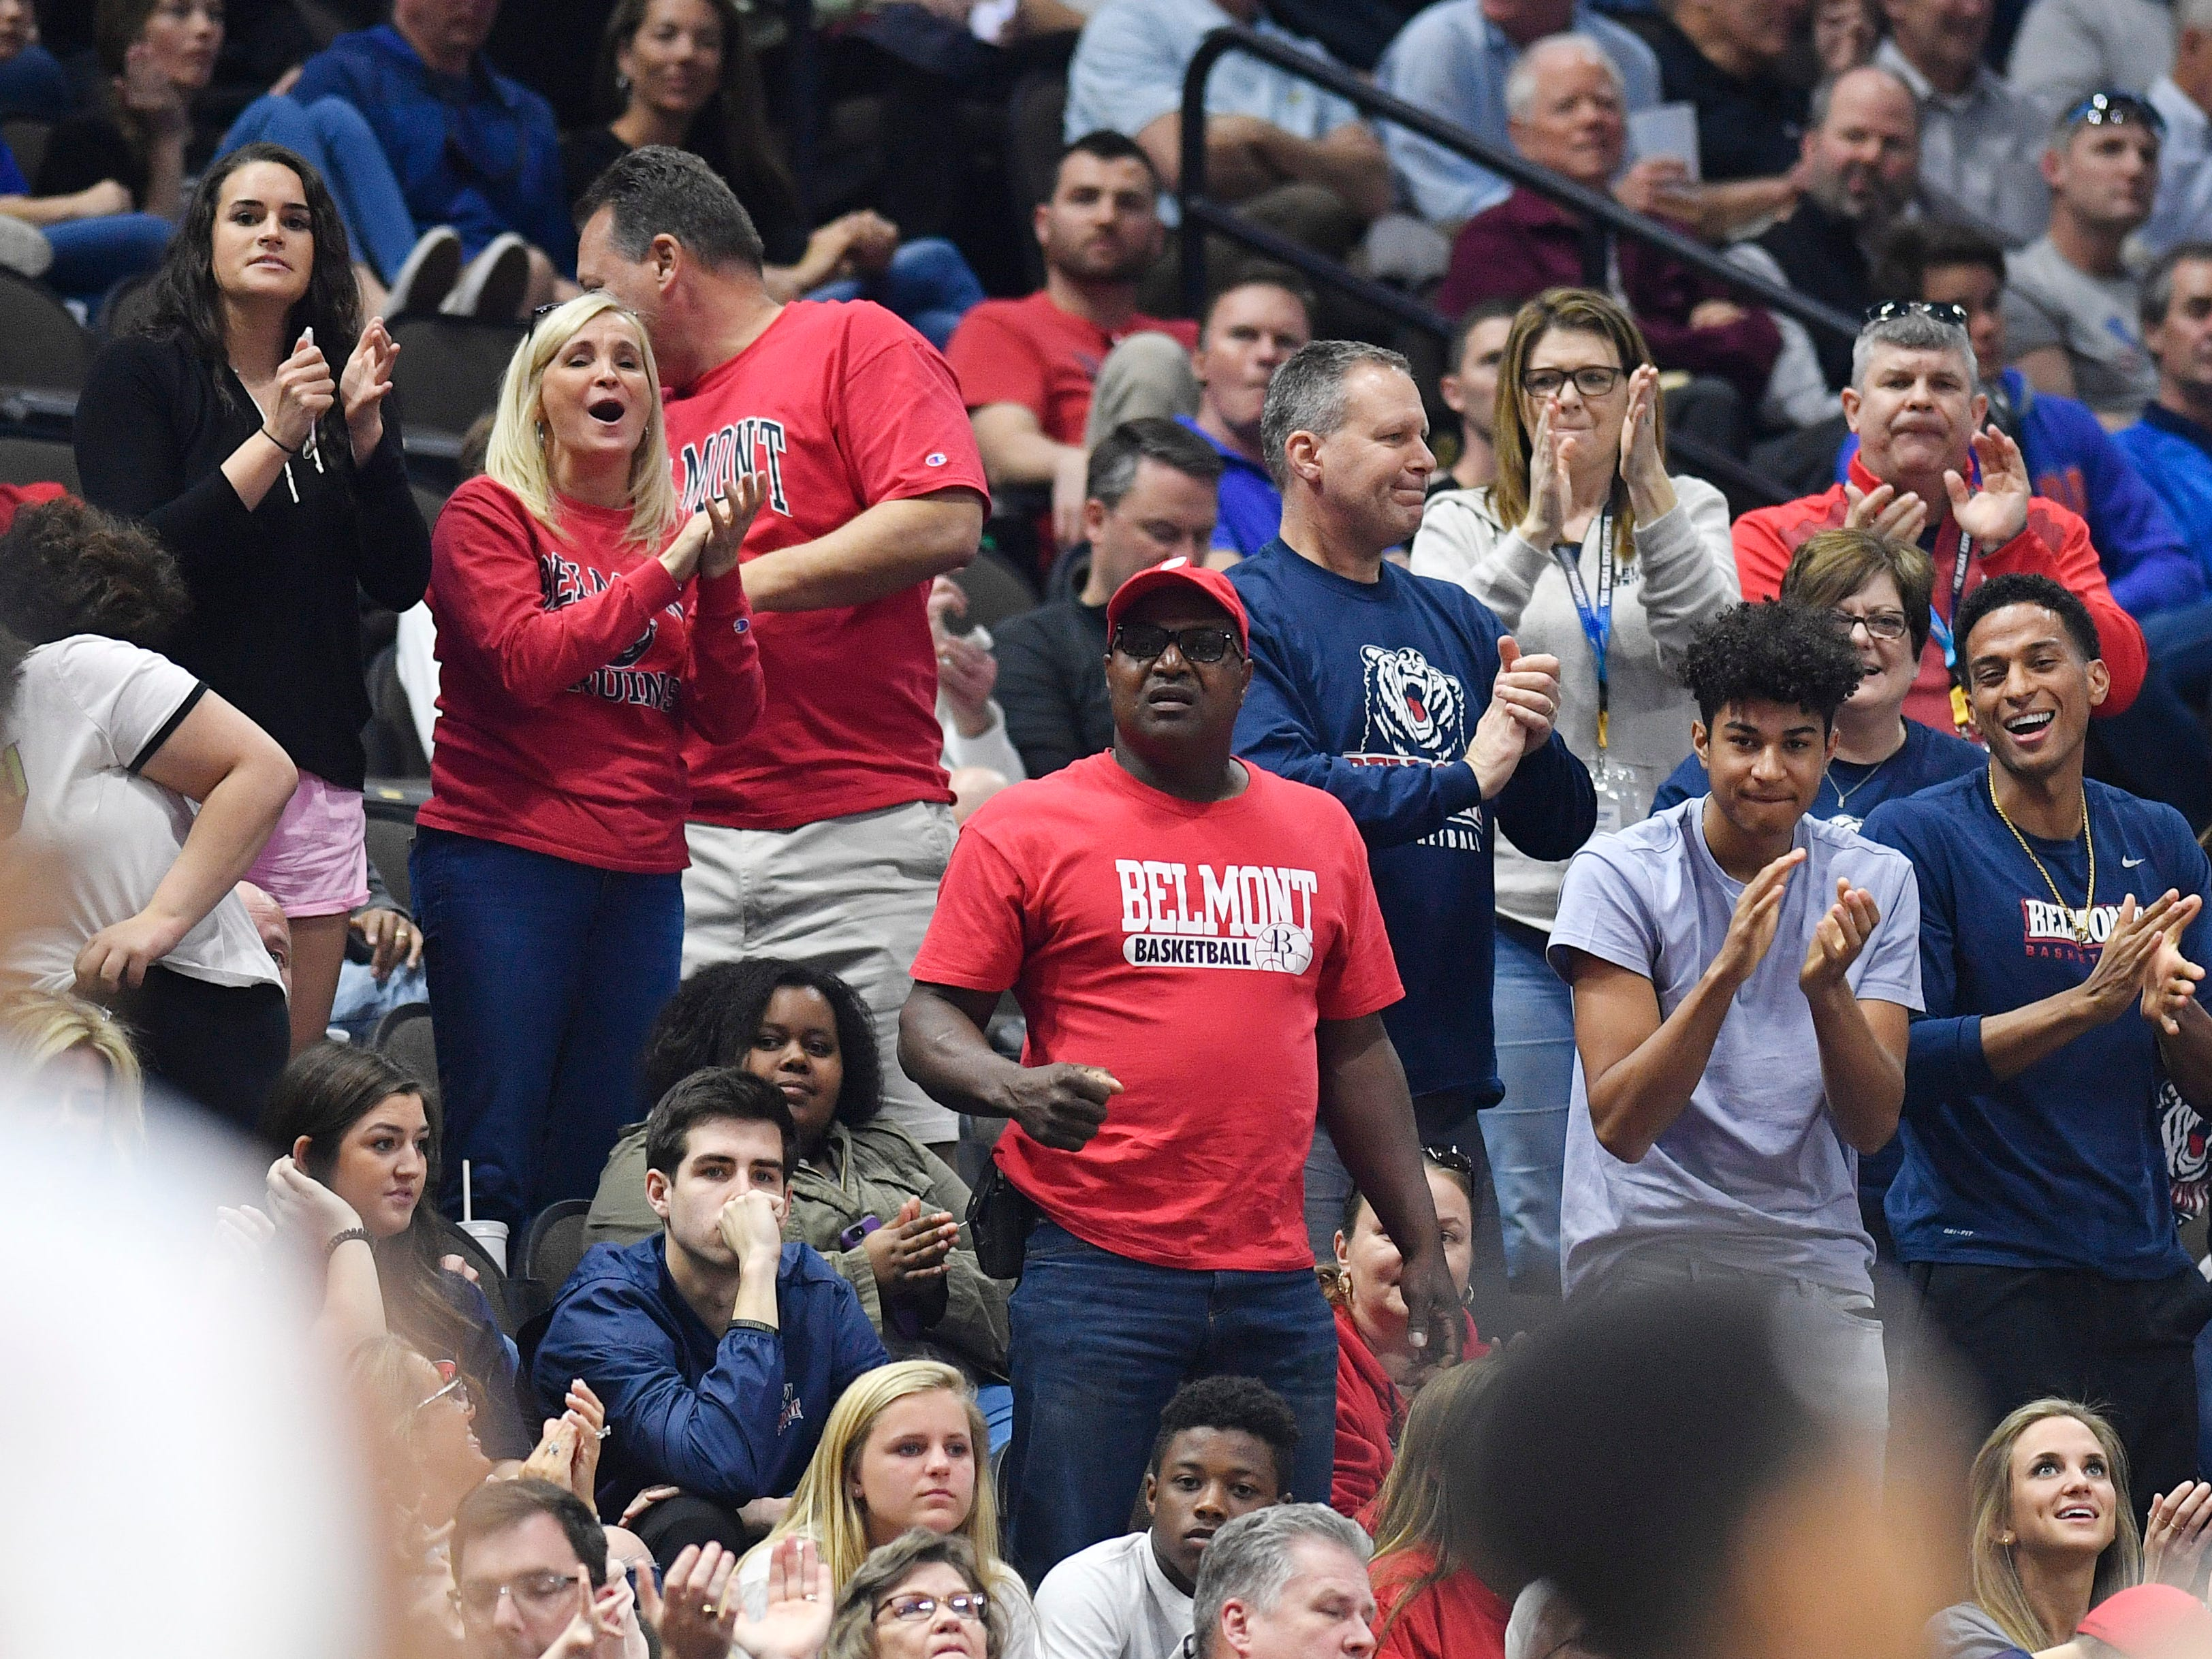 Belmont fans cheer during the first half of the first-round NCAA college basketball tournament game against Maryland at VyStar Veterans Memorial Arena in Jacksonville, Fla., Thursday, March 21, 2019.